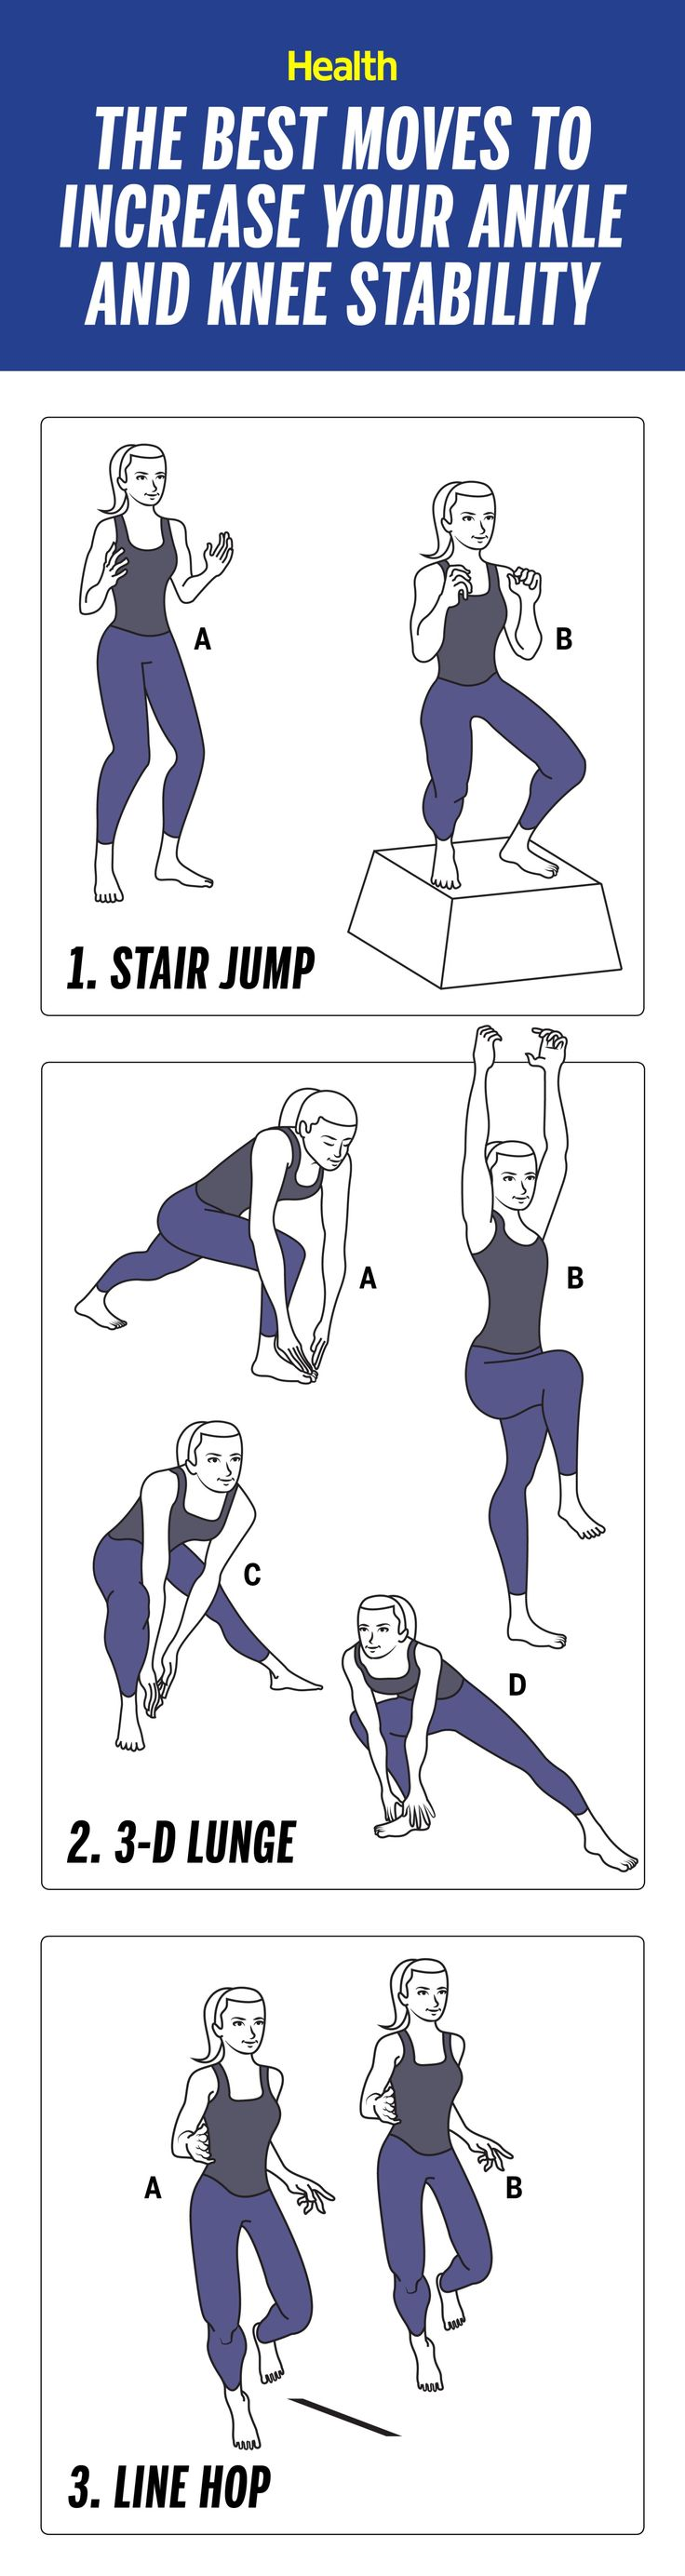 The best exercises to prevent knee and ankle injuries. These moves will increase your ankle and knee stability and make you more agile for your next off-road run. | Health.com